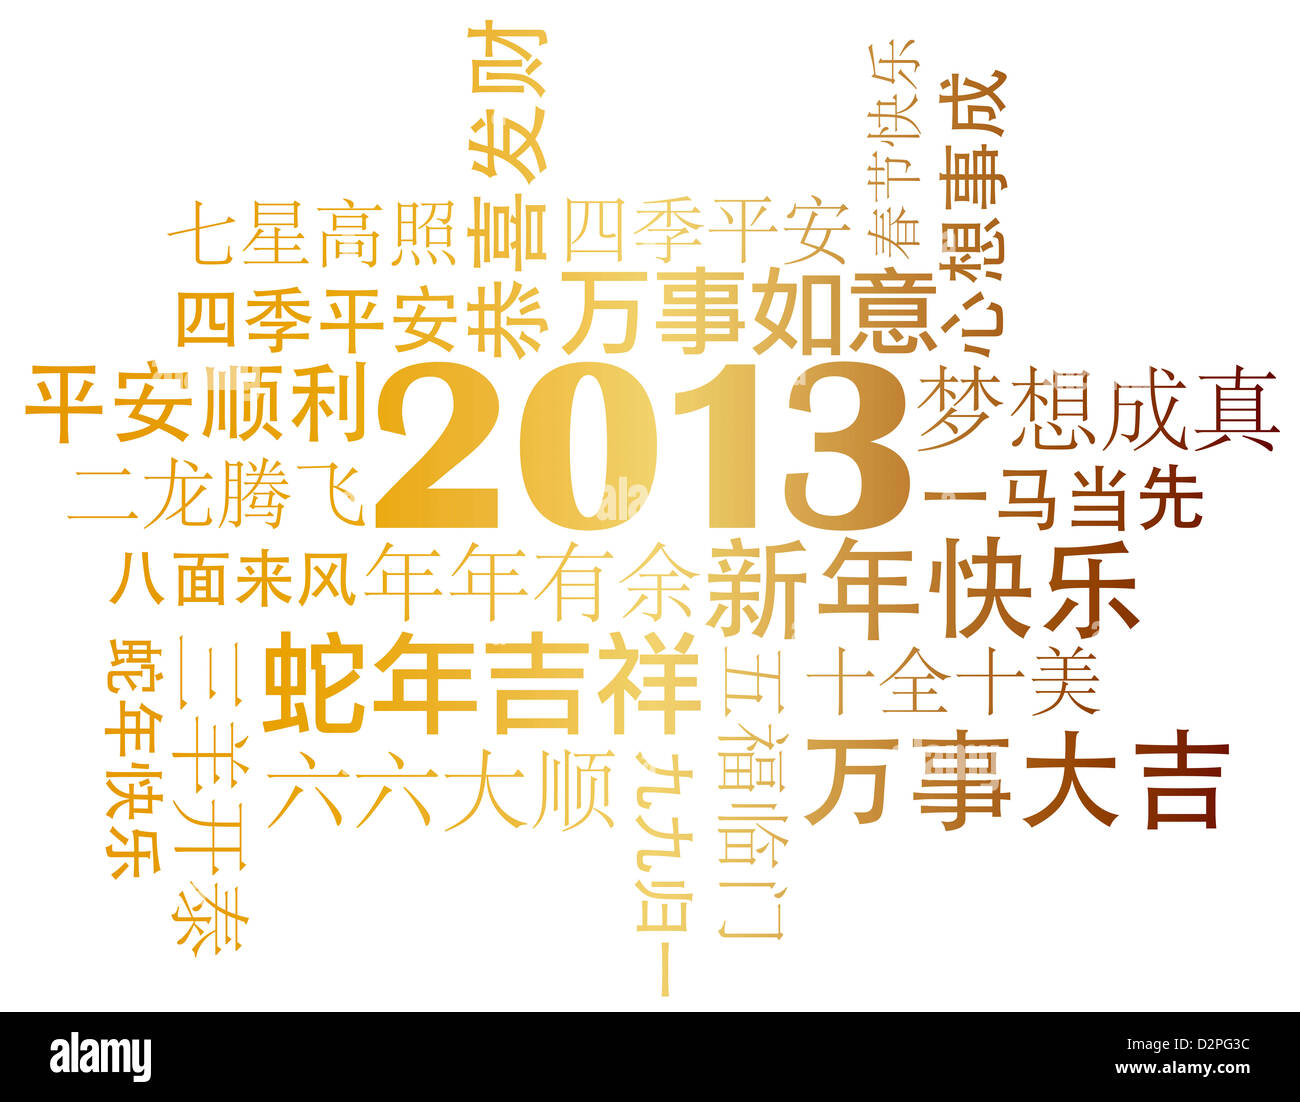 2013 happy chinese new year greetings and well wishes calligraphy 2013 happy chinese new year greetings and well wishes calligraphy writing in gold illustration kristyandbryce Images